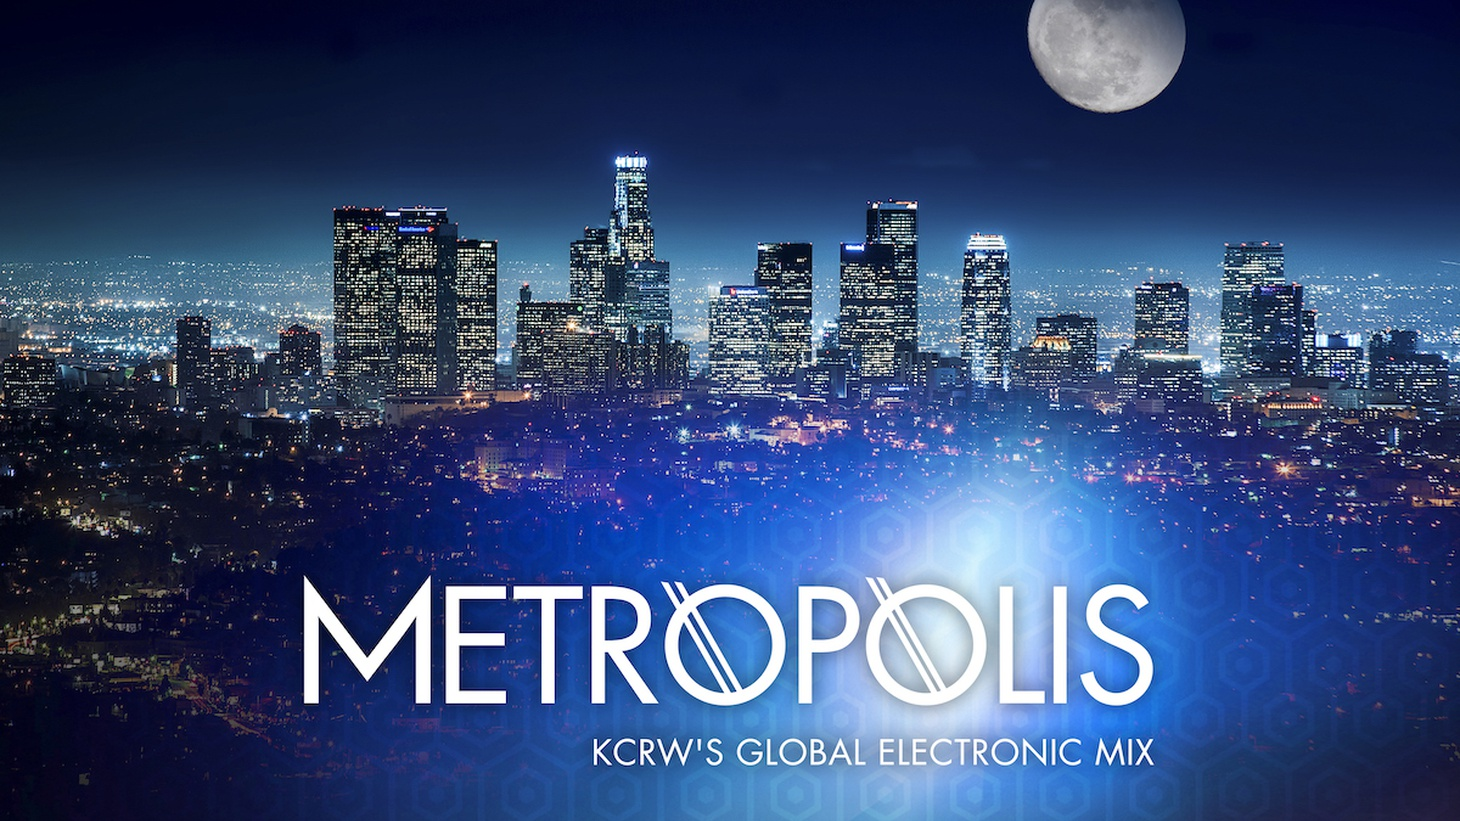 Legendary L.A. house DJ, sometime remix producer, and owner of DJ specialty record store Wax Records, Doc Martin joins Jason Bentley in Metropolis during the 9 o'clock hour to talk about his new mix CD on Classic Records.